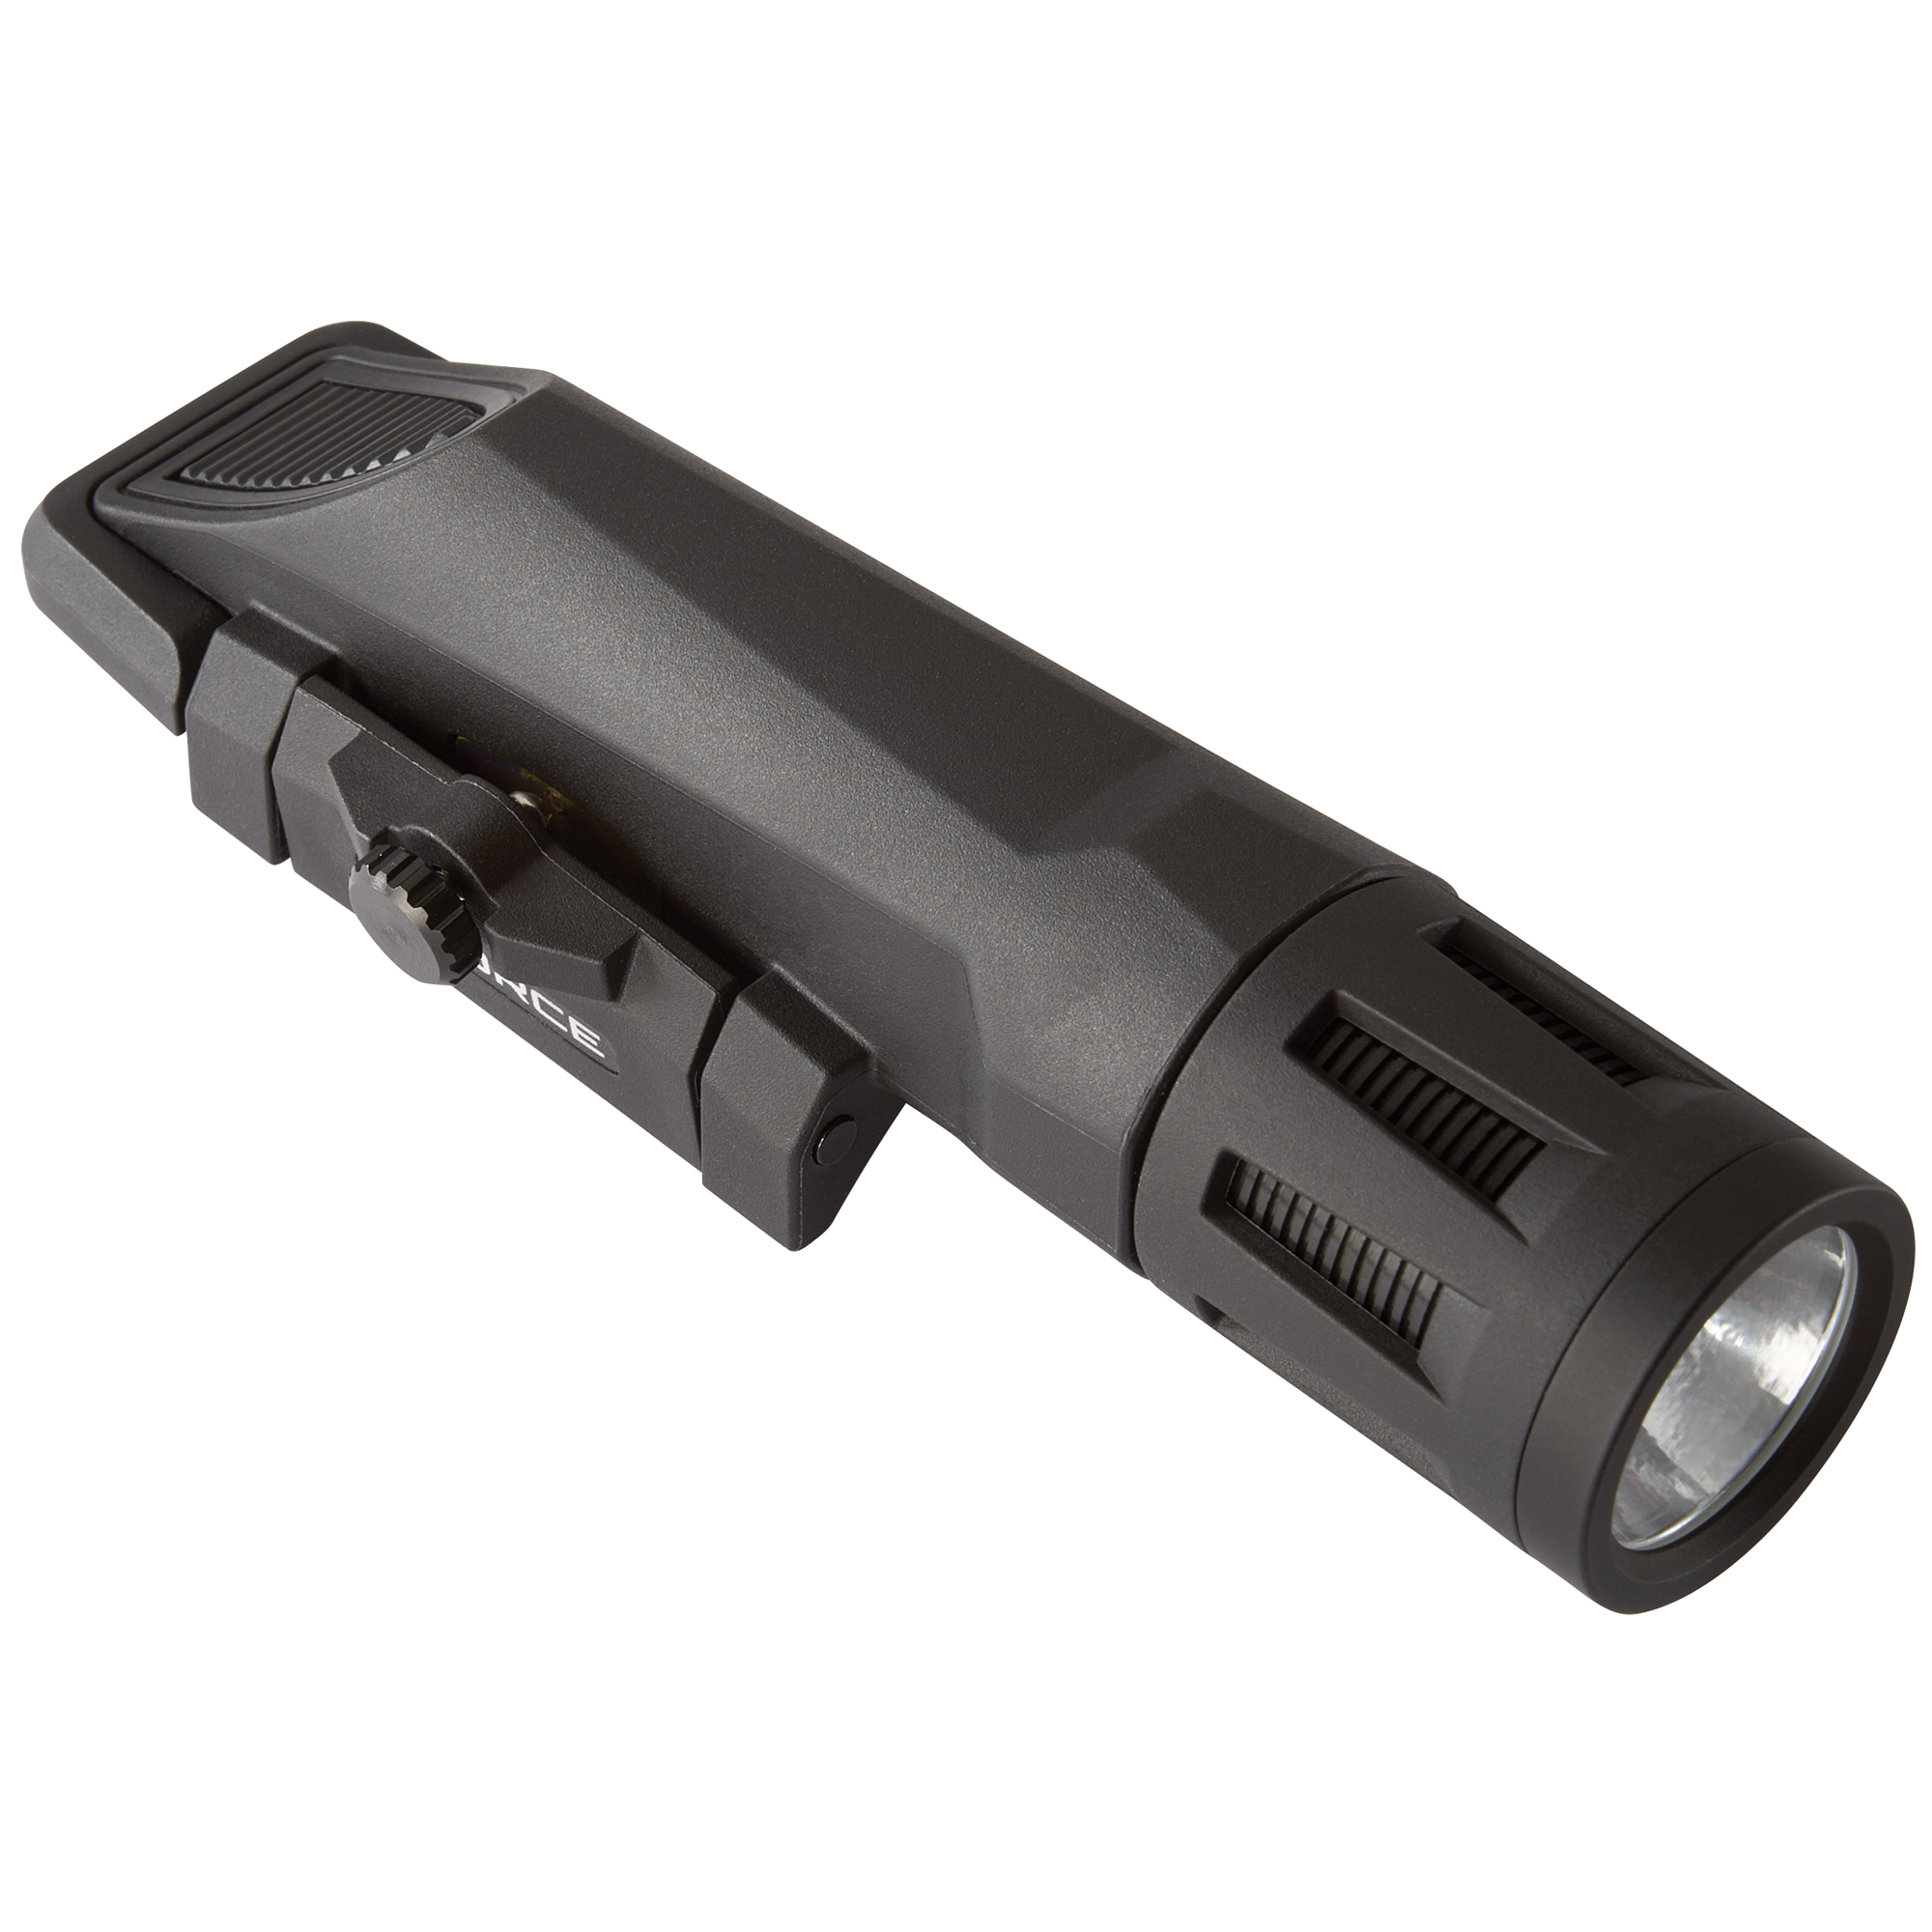 """With 800 lumens of vibrant white light"""" Inforce's WMLx Series is engineered to be lightweight and powerful which offers three easy-to-use operating modes: constant"""" momentary and strobe. At just 4 ounces"""" its concentrated spot and far-reaching"""" high-intensity beam provides significant light for situational awareness and long-distance target identification. The strobe function is easily disabled and the easy-to-operate lockout system ensures the light isn't turned on until you're ready. Our all-inclusive rail clamping design integrates seamlessly with your weapon"""" providing simple"""" fast mounting with no need for additional tools."""